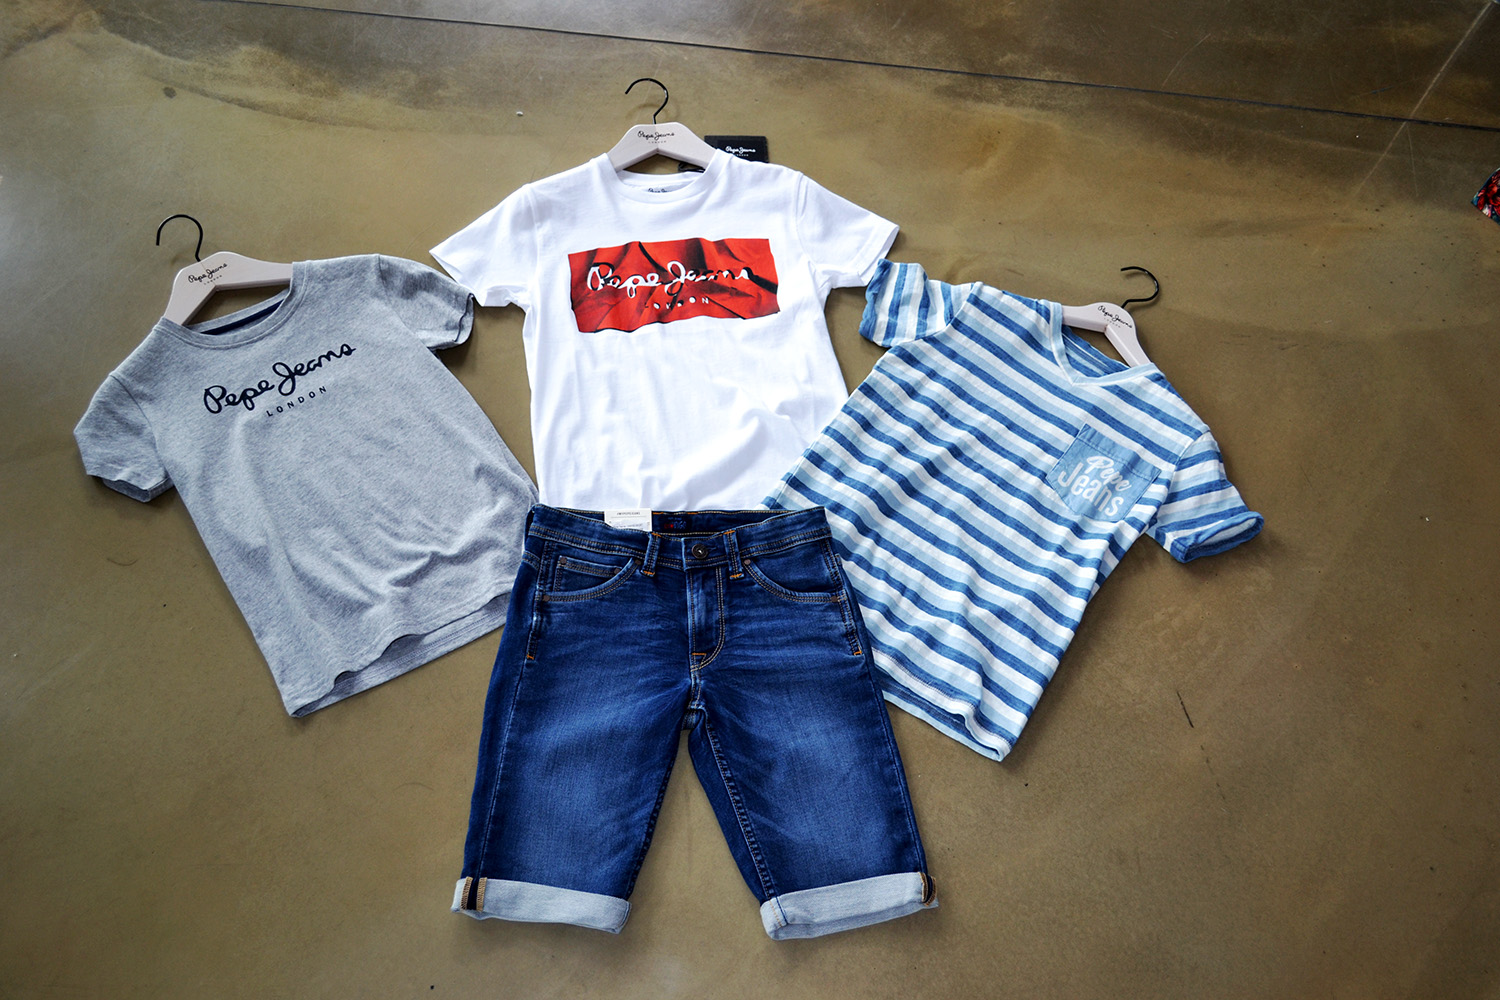 Pepe Jeans neues Sortiment 2